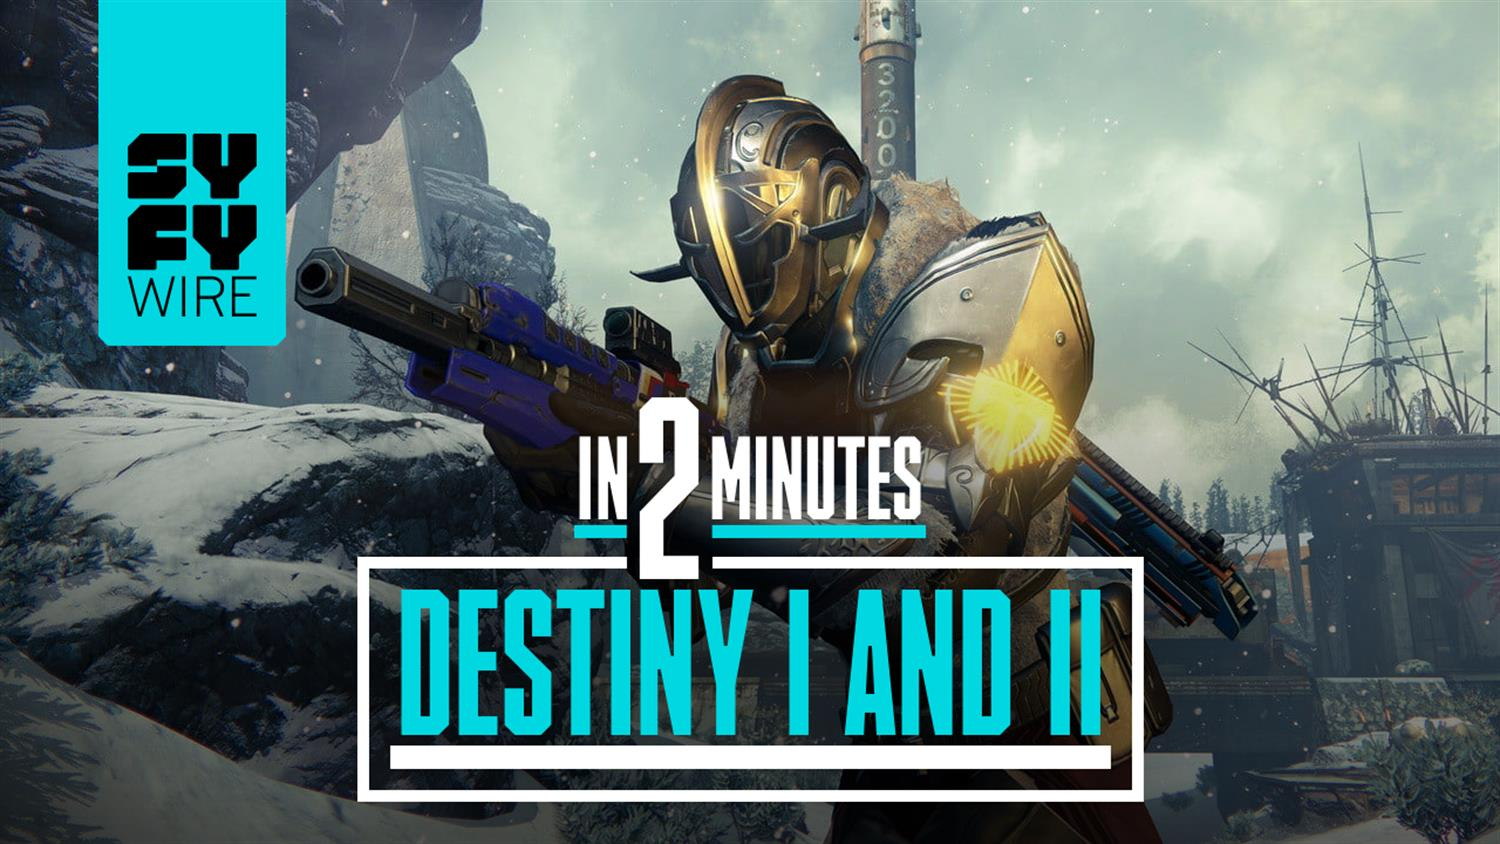 The Destiny Games In 2 Minute